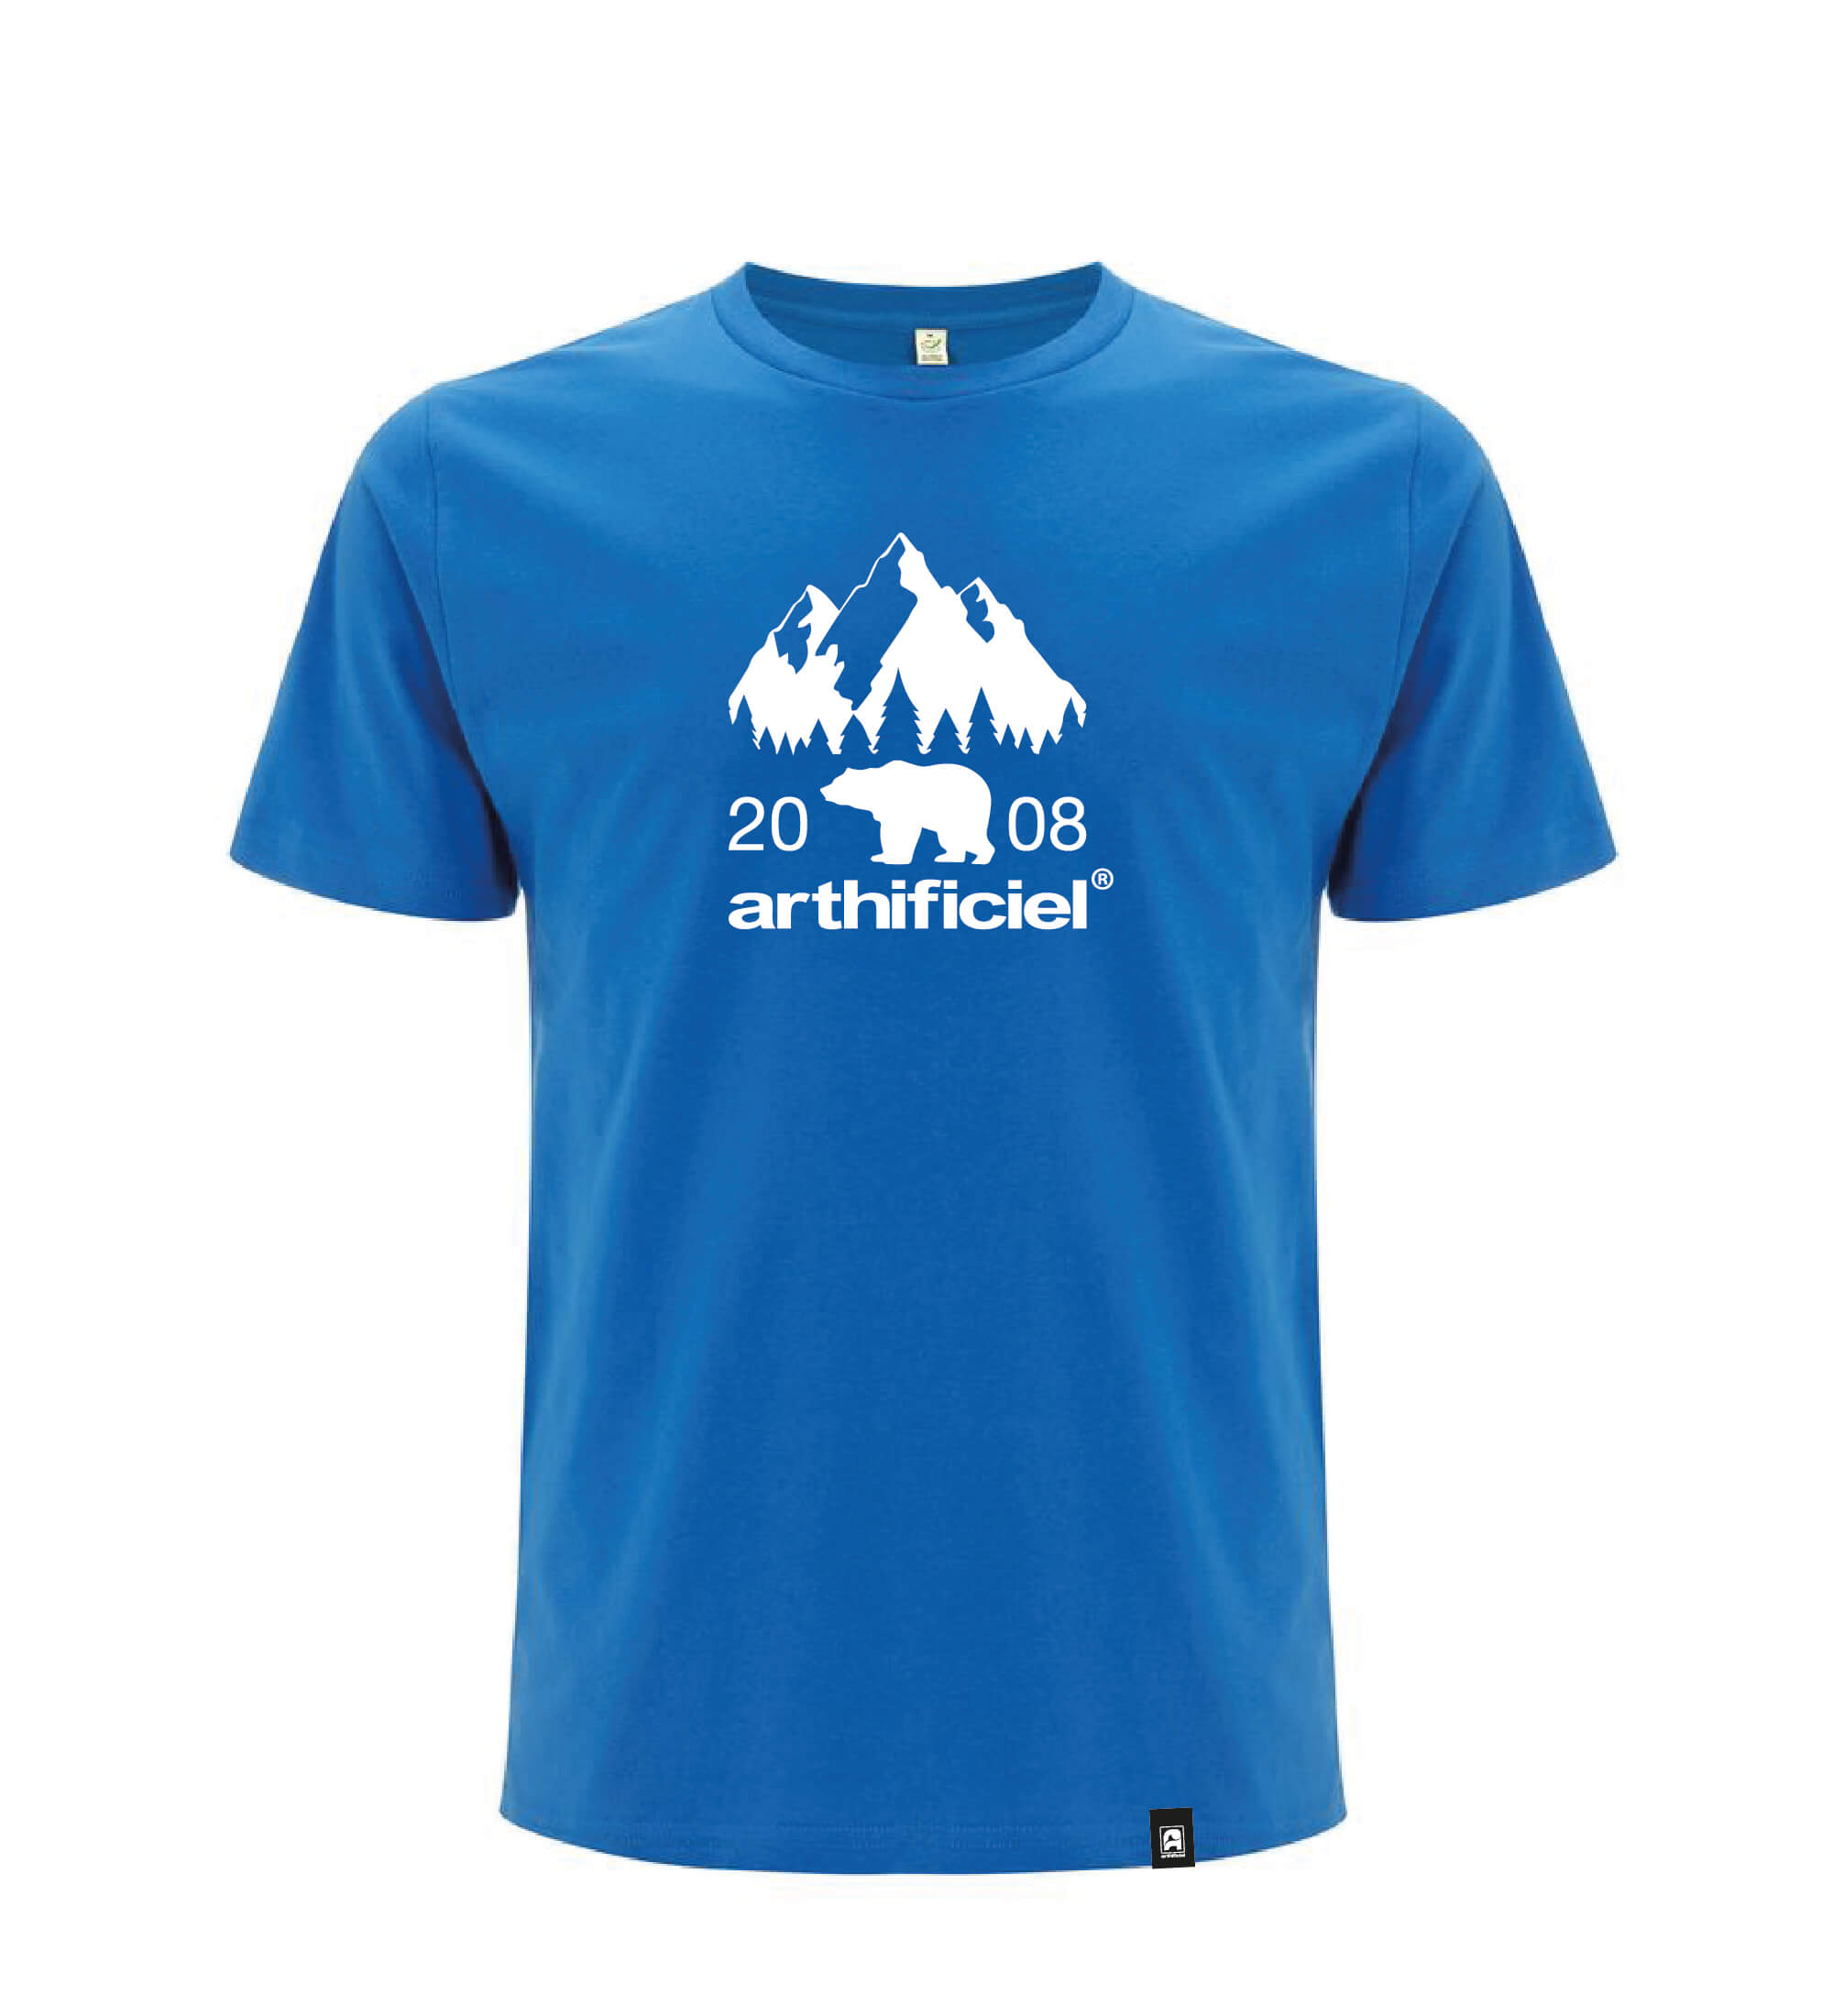 21€ T shirt EP01 Royal blue